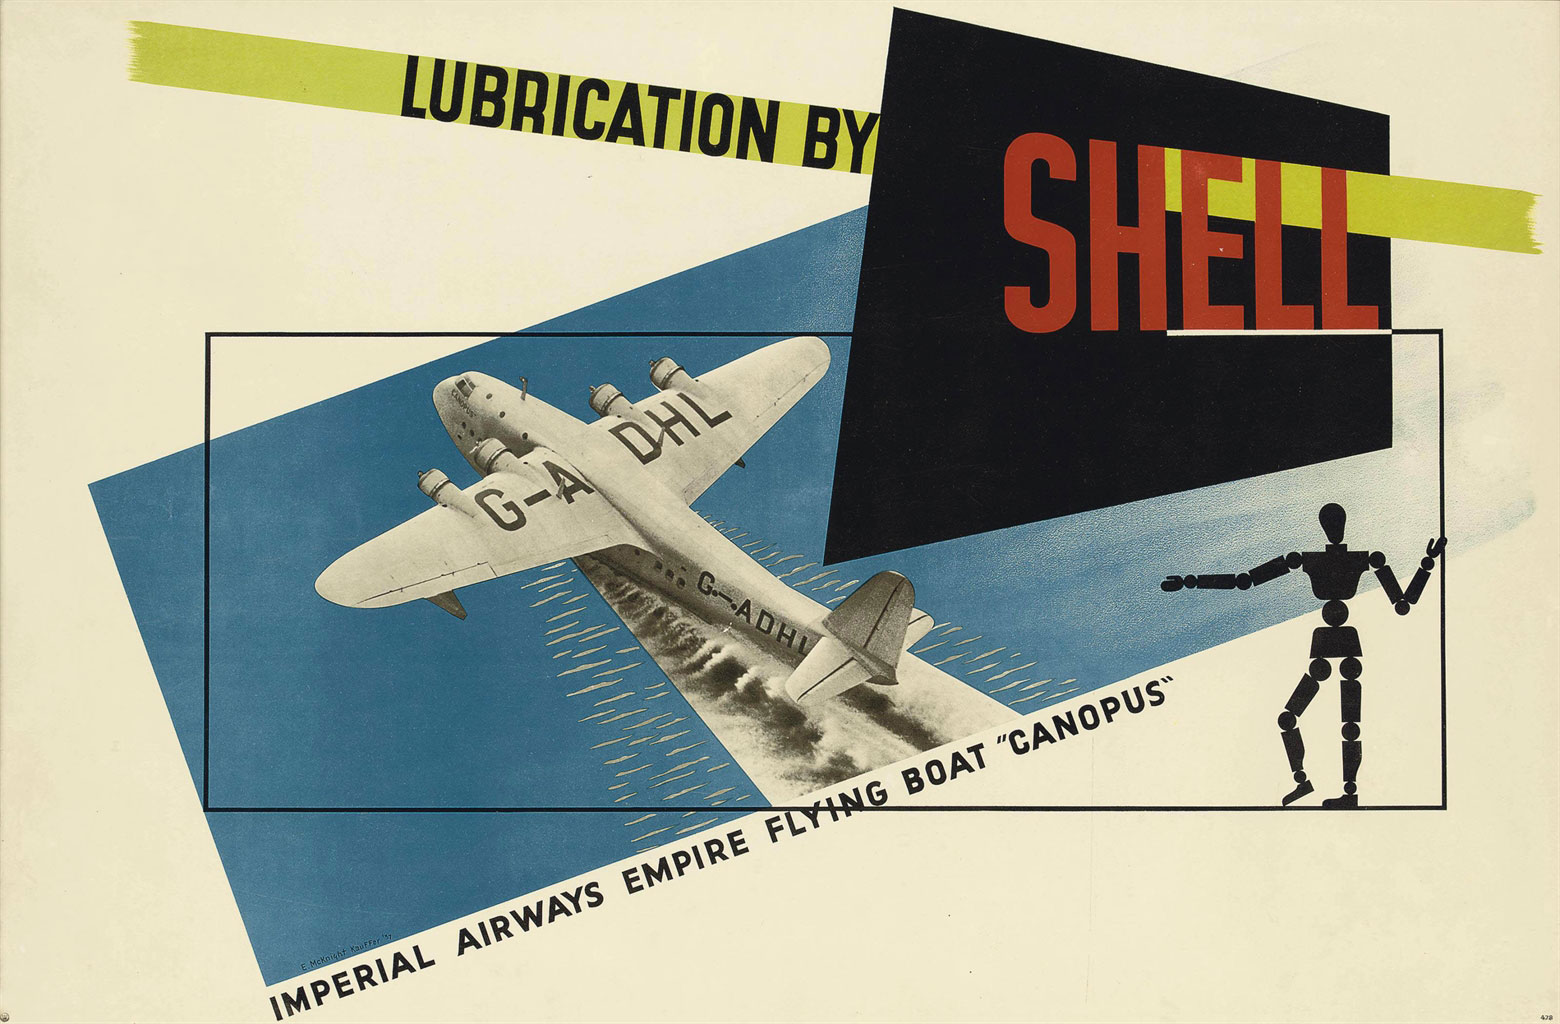 Edward-McKnight-Kauffer-affiche-lubrication-shell-02